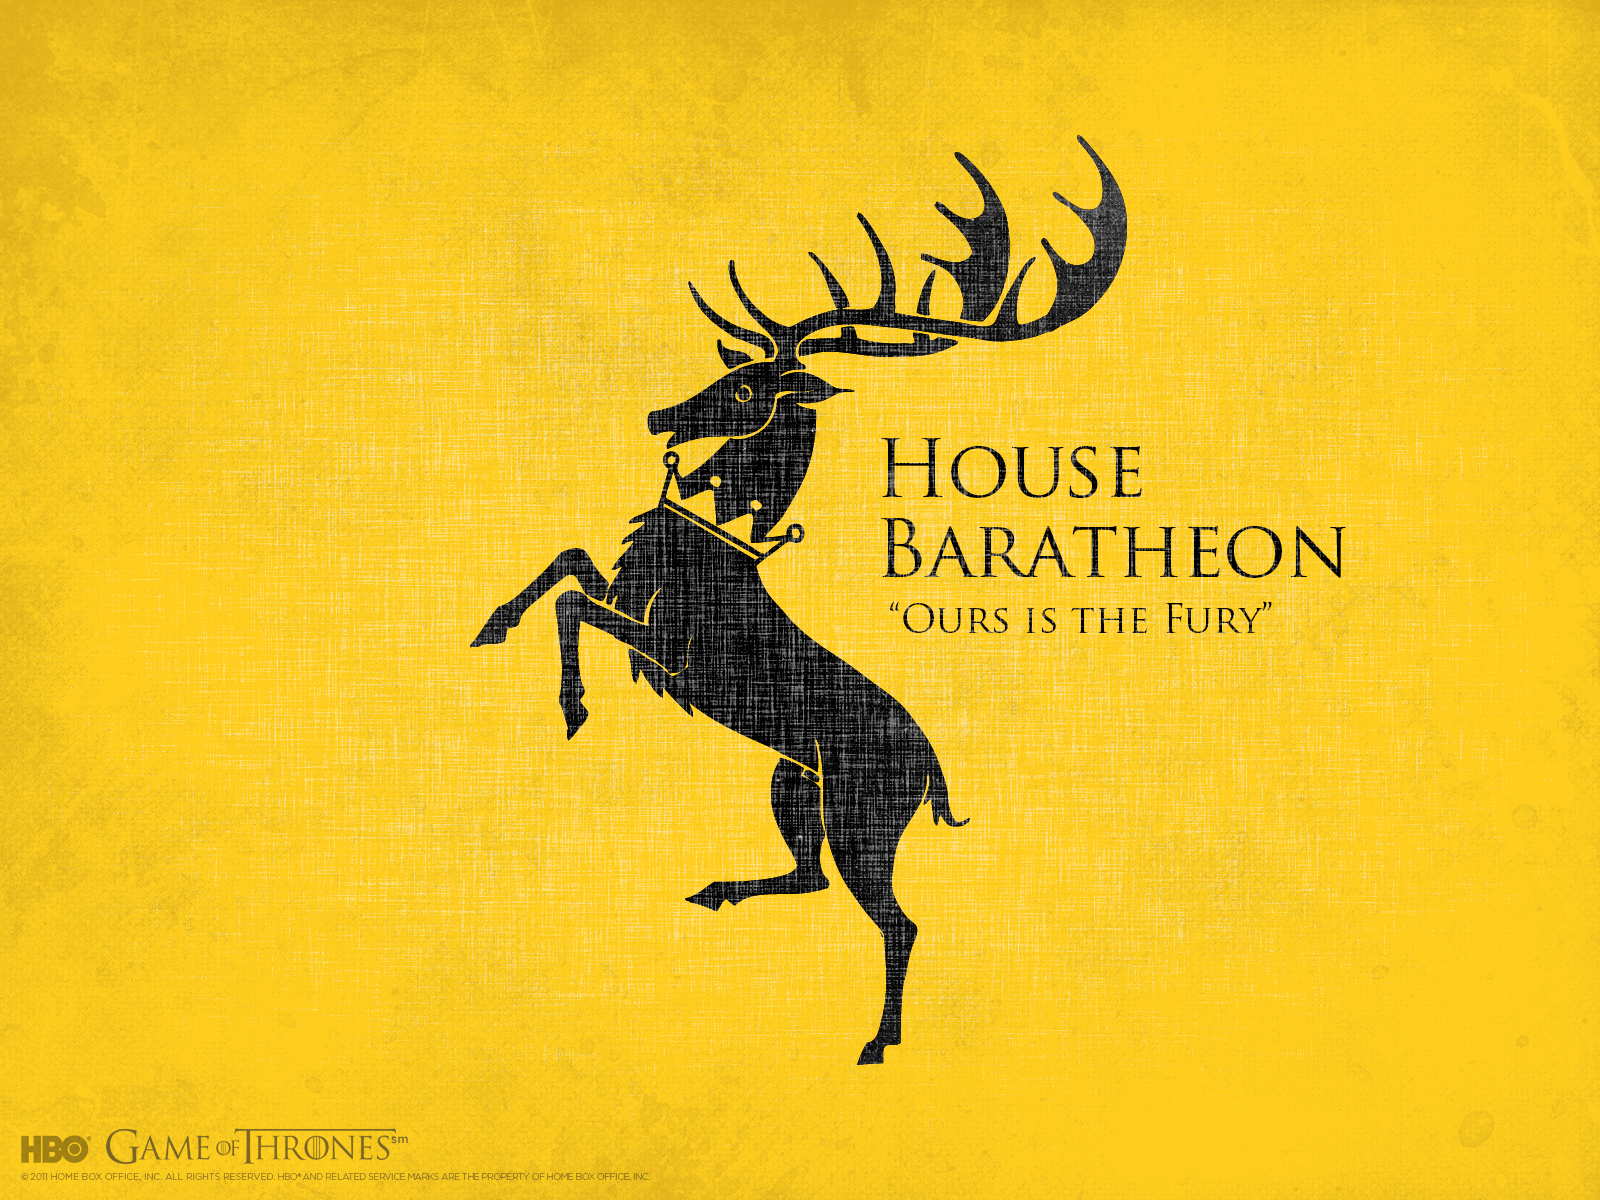 Game of thrones the symbolism of seasons sigils and dire wolves this family contains the king of the iron throne robert the stag is by the far the most hunted animal in the forest buycottarizona